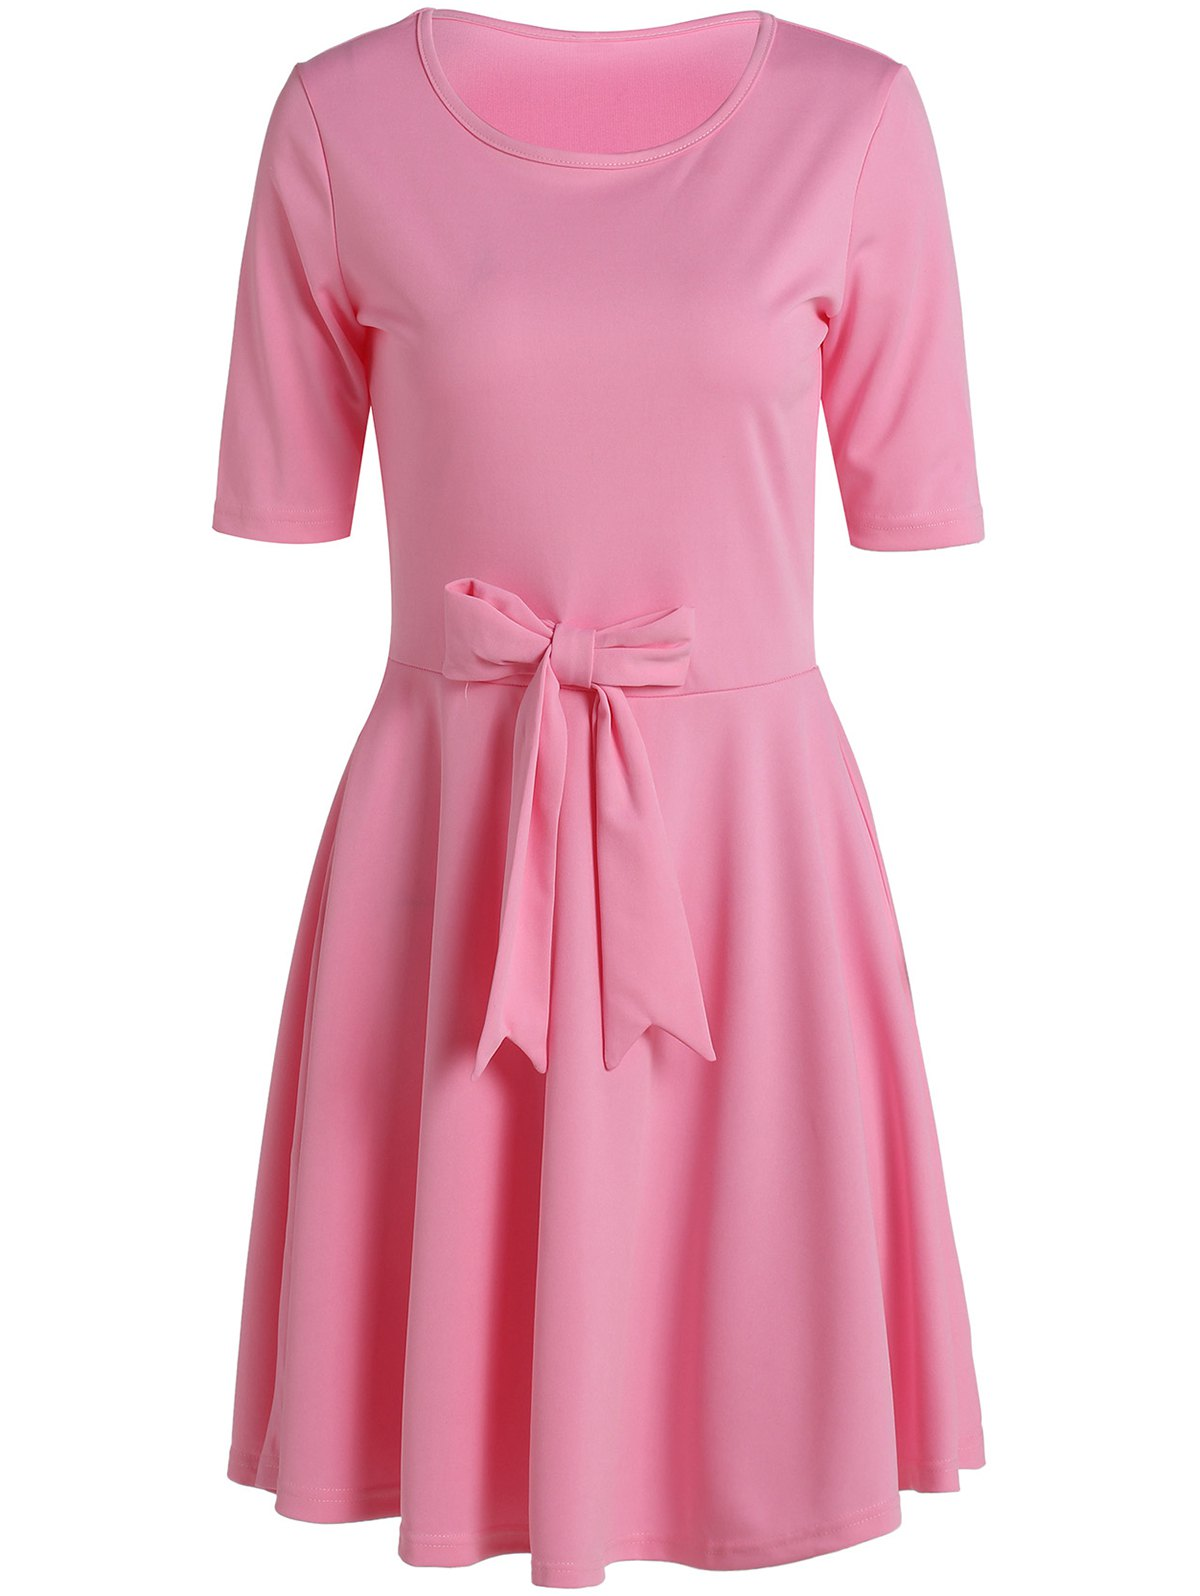 Chic 1/2 Sleeve Round Neck Solid Color Bowknot Embellished Women's Dress - PINK M